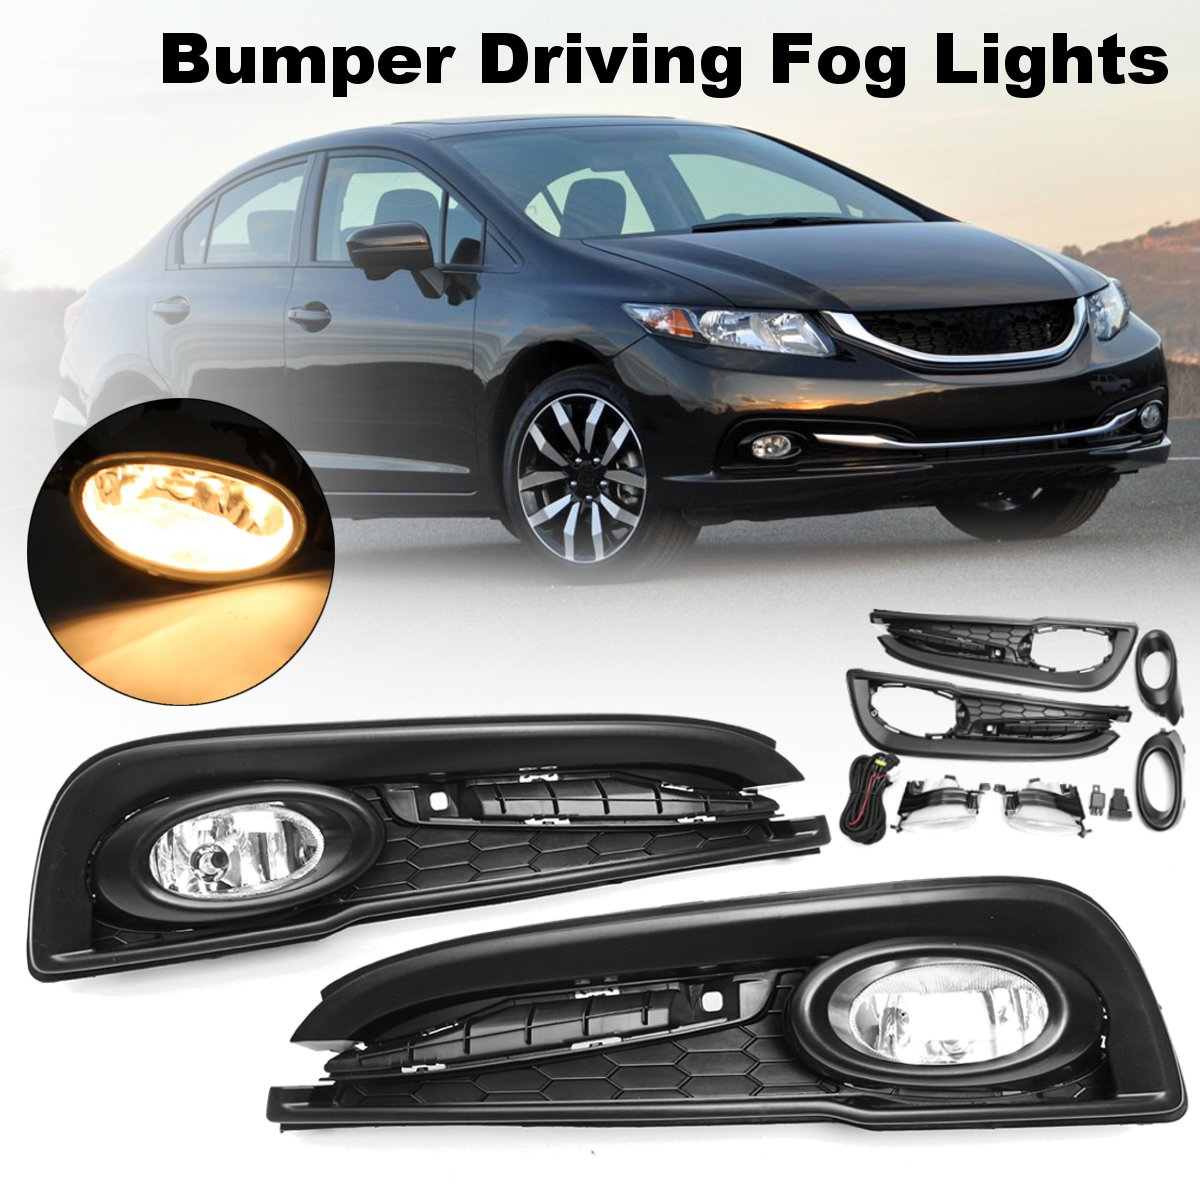 Pair H11 55W DC 12V Clear Bumper Driving Fog Lights w/ Wiring Harness Replacements For Honda/Civic 4DR Sedan 2013 2014 2015